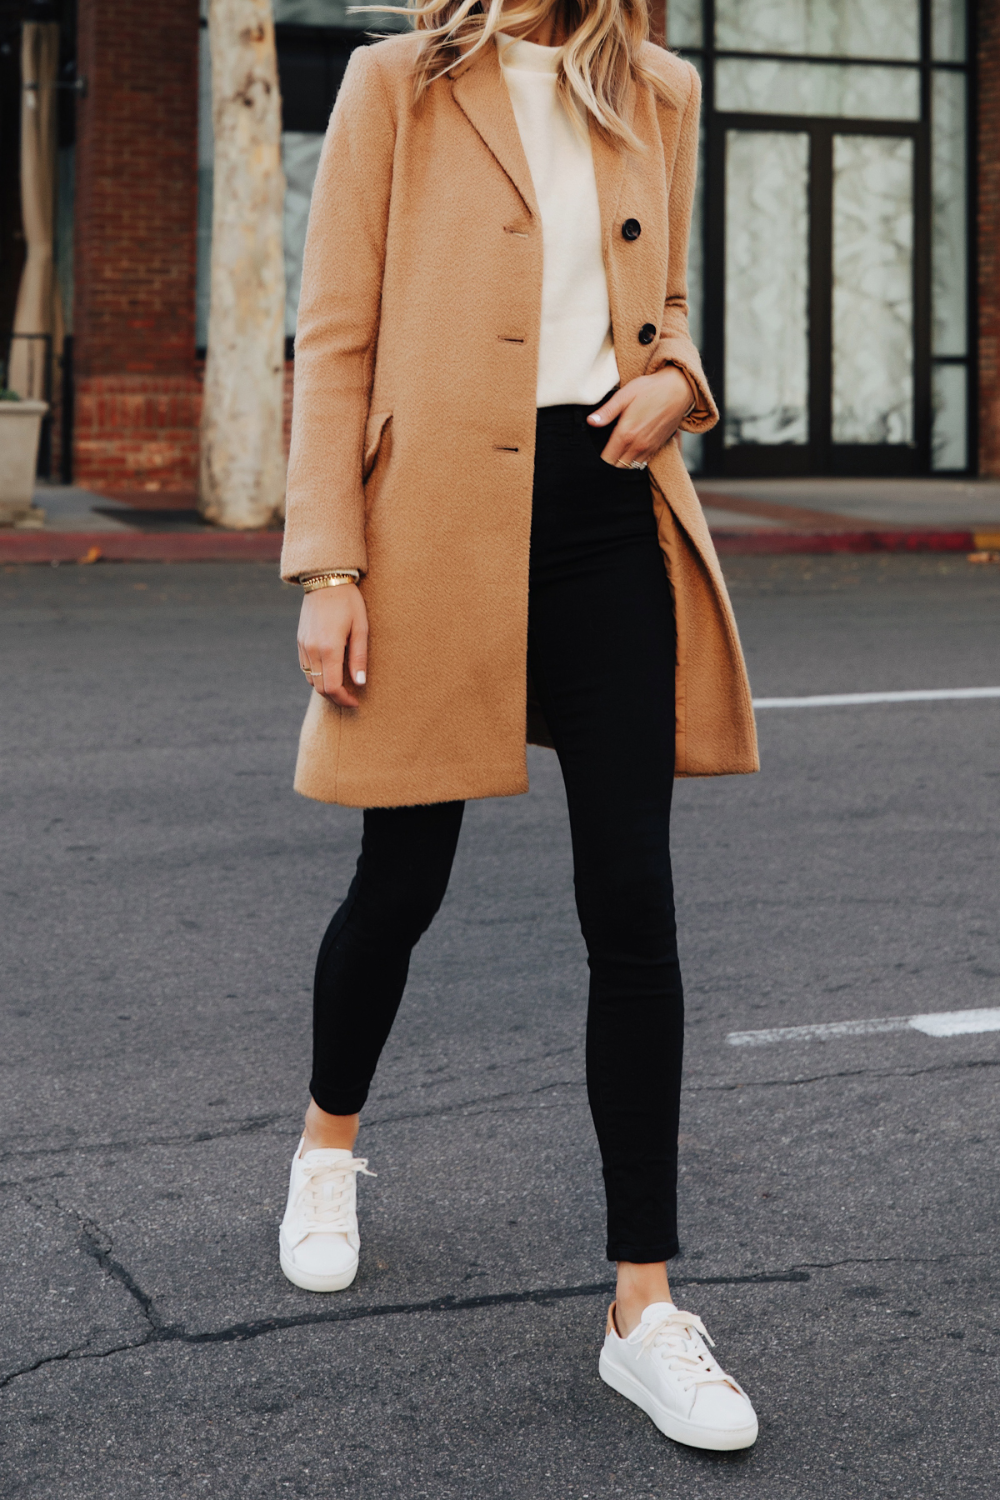 An Easy Outfit to Recreate With Your Camel Coat |